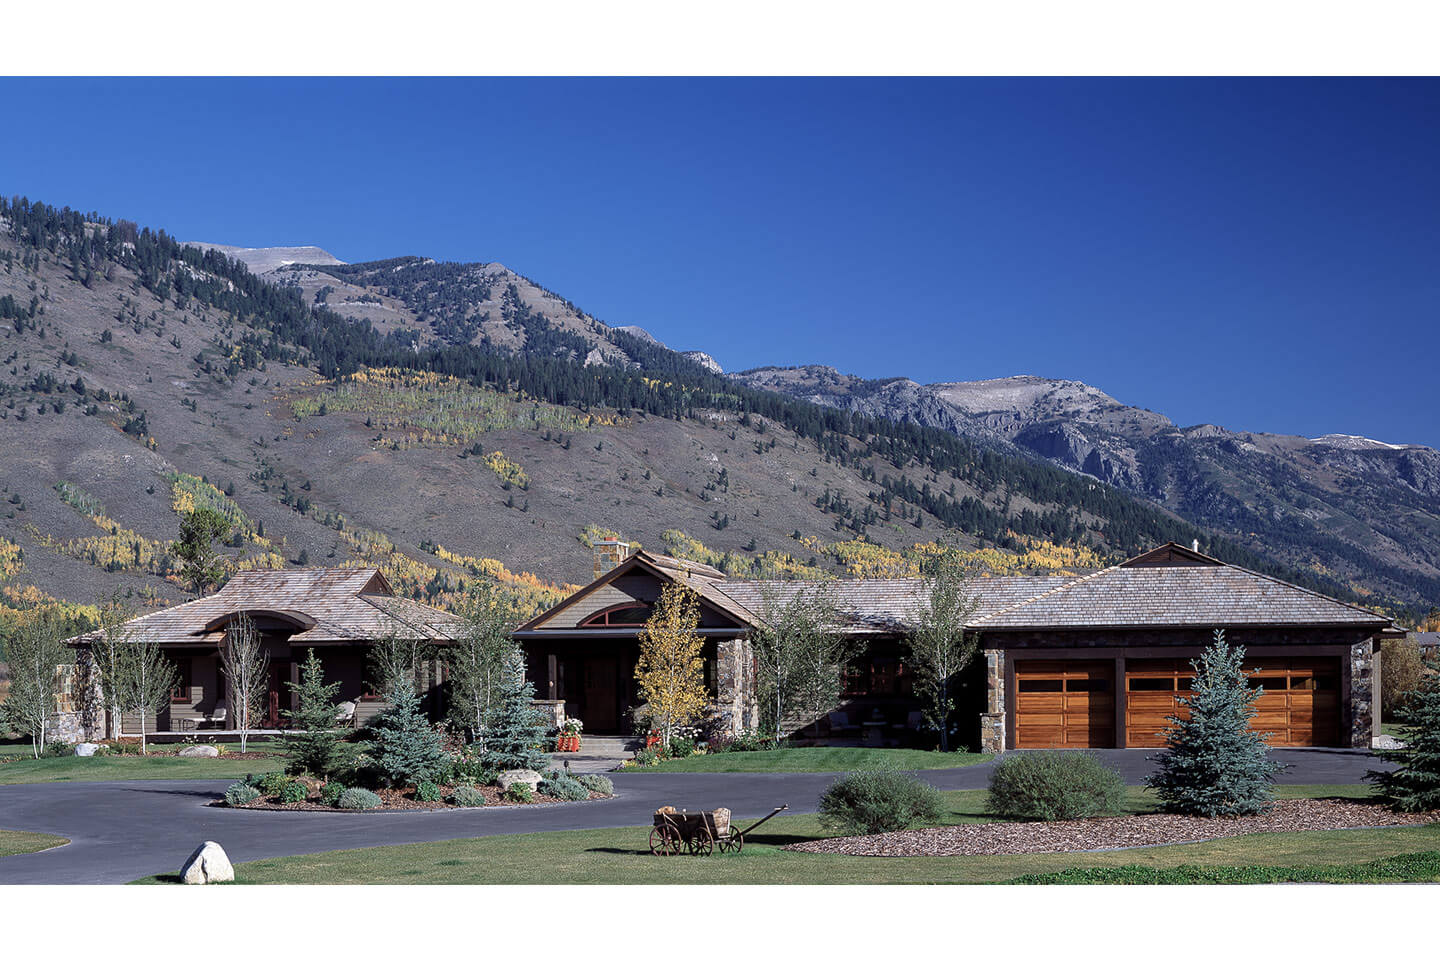 Residence south facade and mountain range in background